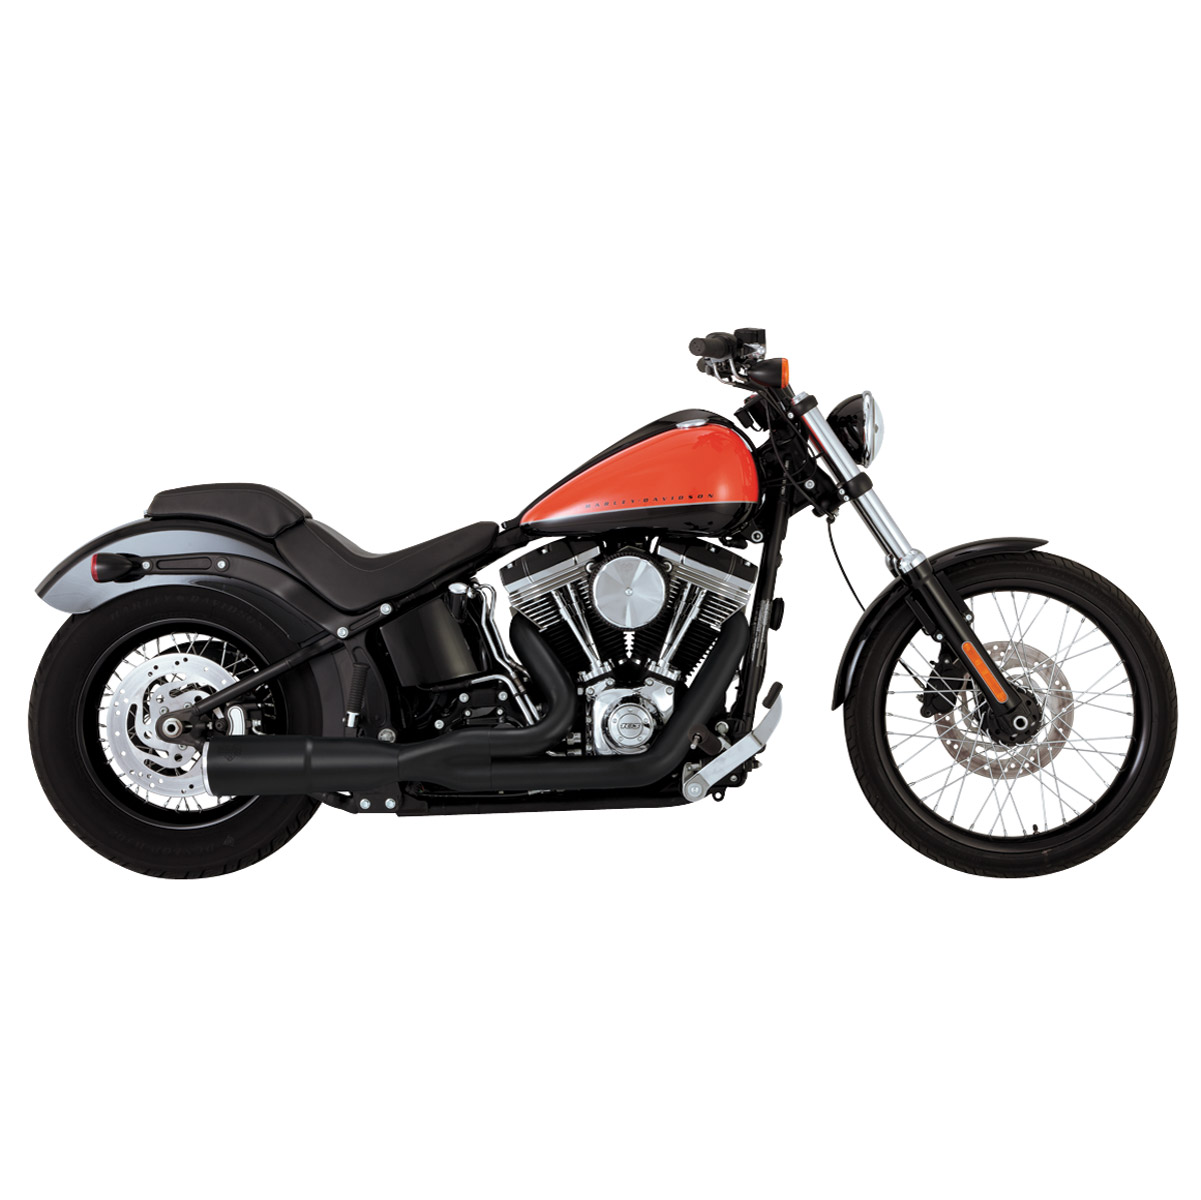 Vance & Hines Hi Output 2 Into 1 Exhaust Black Short - 46543